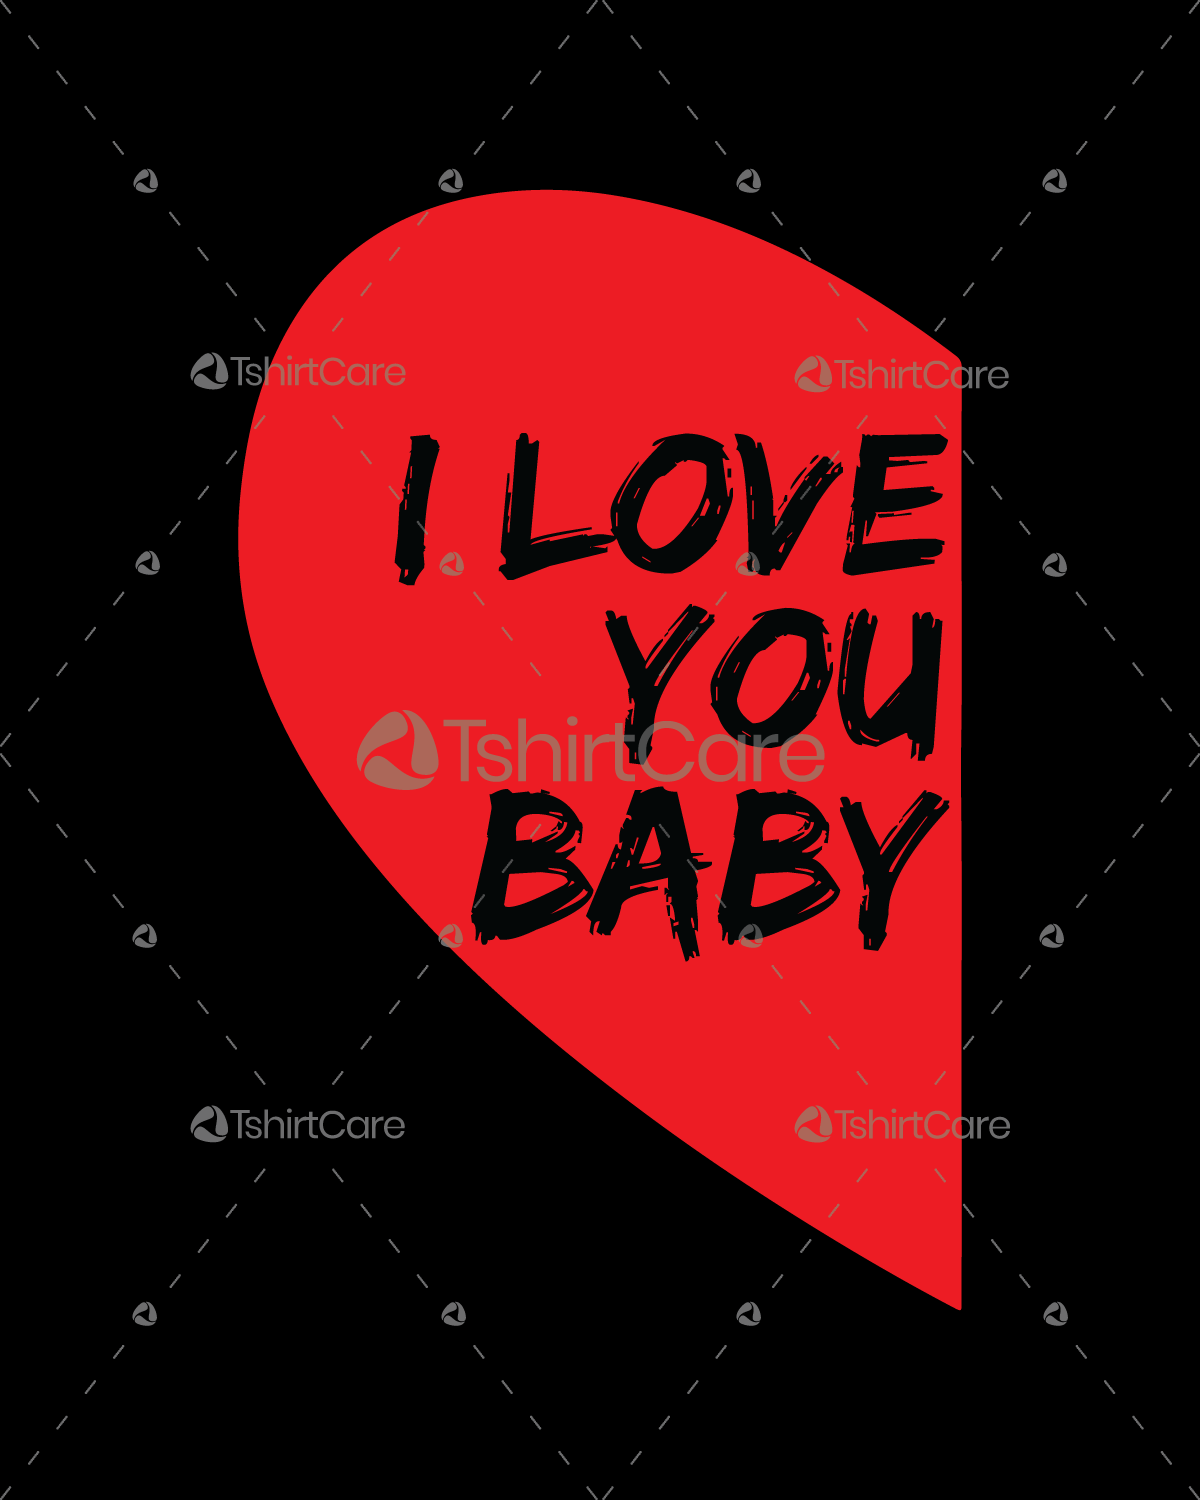 I love you baby T shirt Design Valentine's Day Tee Gift